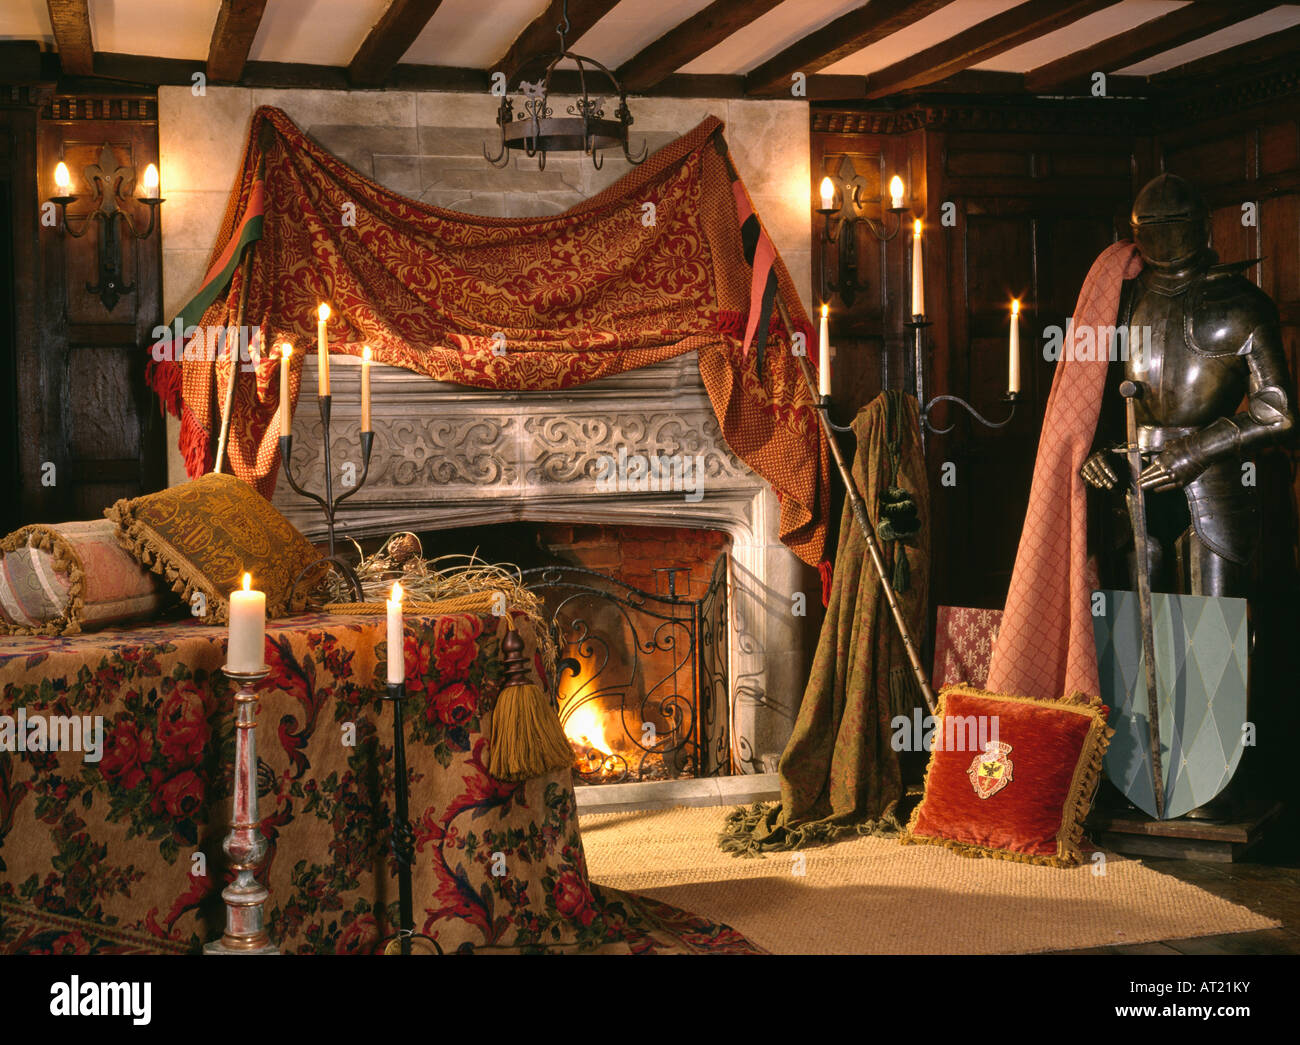 velvet drape above stone fireplace in tudor style sitting room